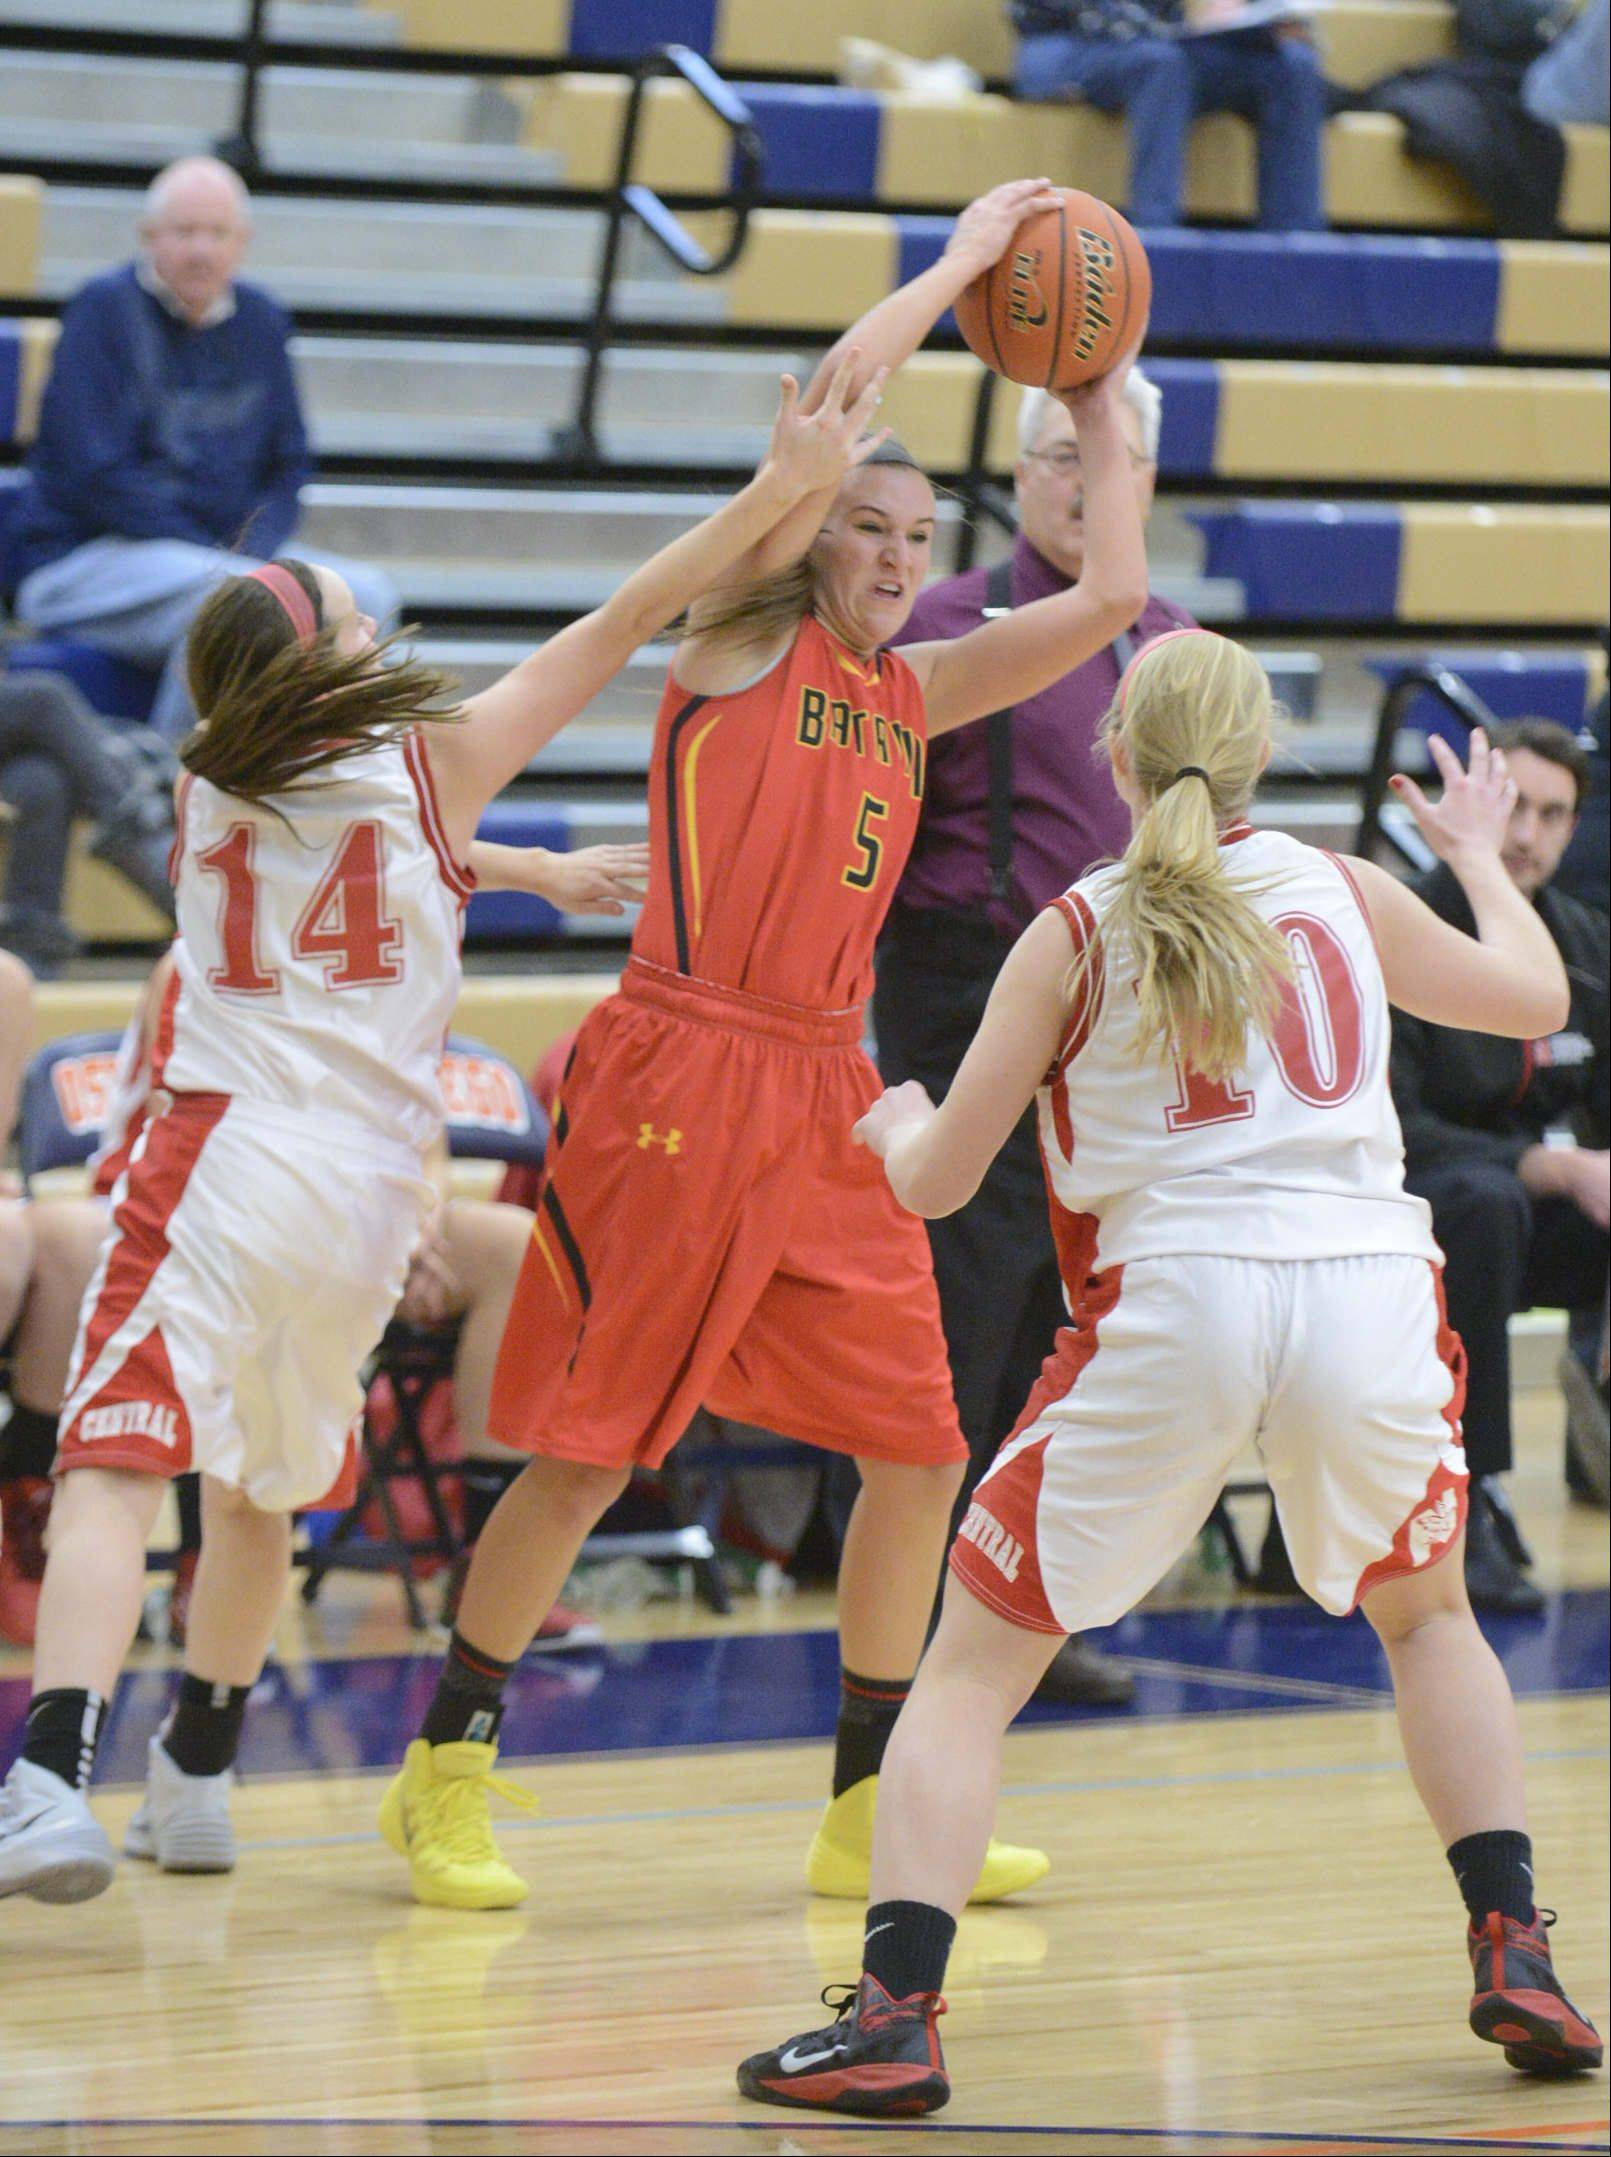 Images from the Batavia vs. Naperville Central girls basketball game Saturday, December 14, 2013.